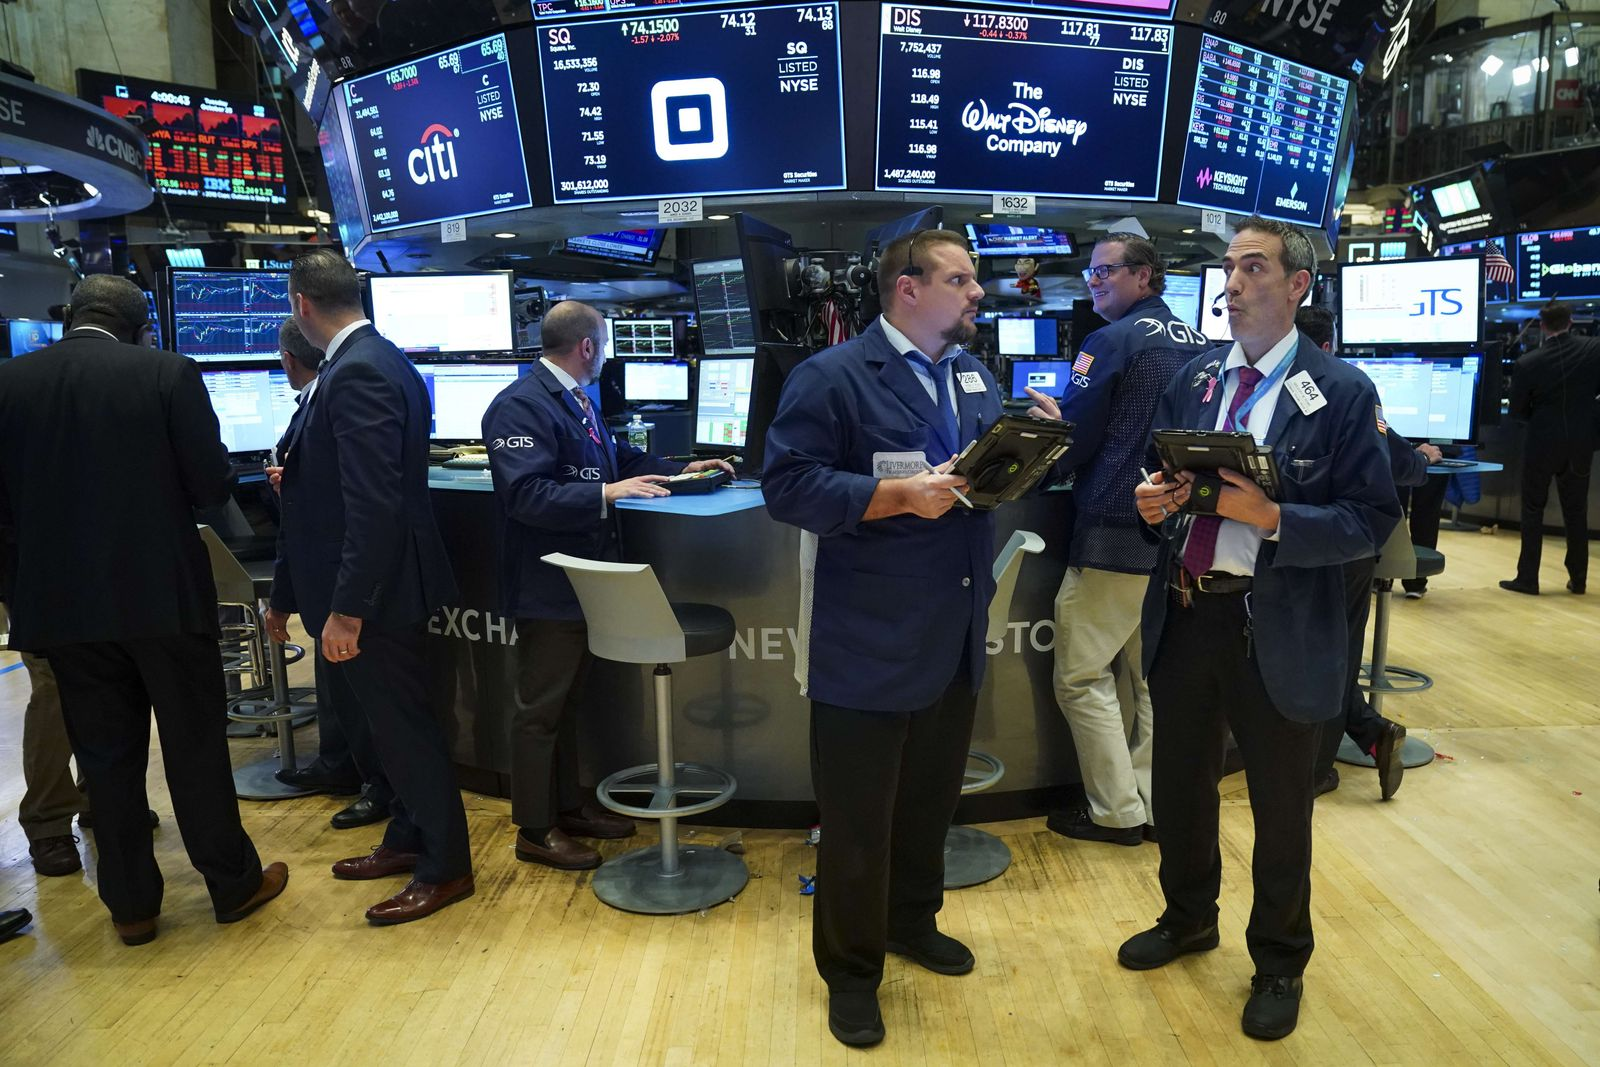 US-STOCKS-TAKE-ANOTHER-MAJOR-PLUNGE-AS-FEARS-FOR-ECONOMY-RISE